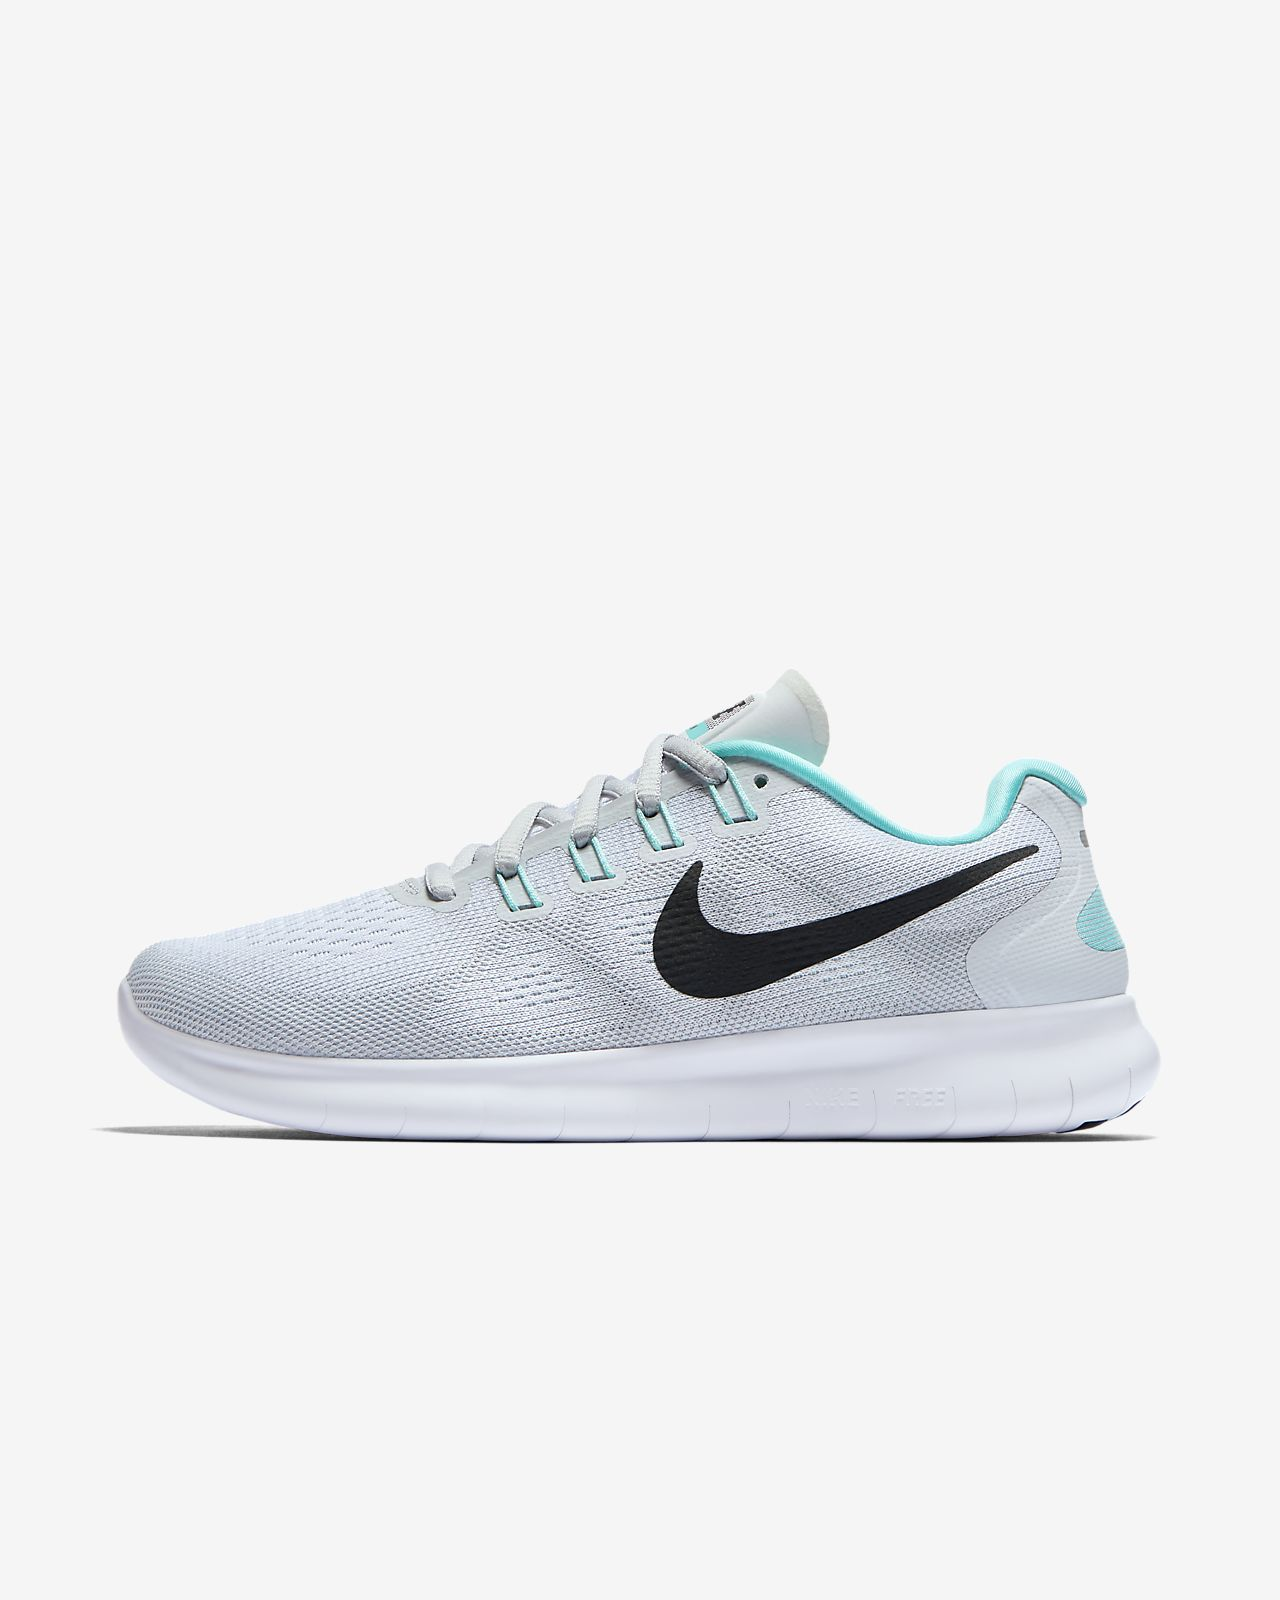 Marques Chaussure femme Nike femme Wmns Nike Free Rn 2017 White/black-pure platinum